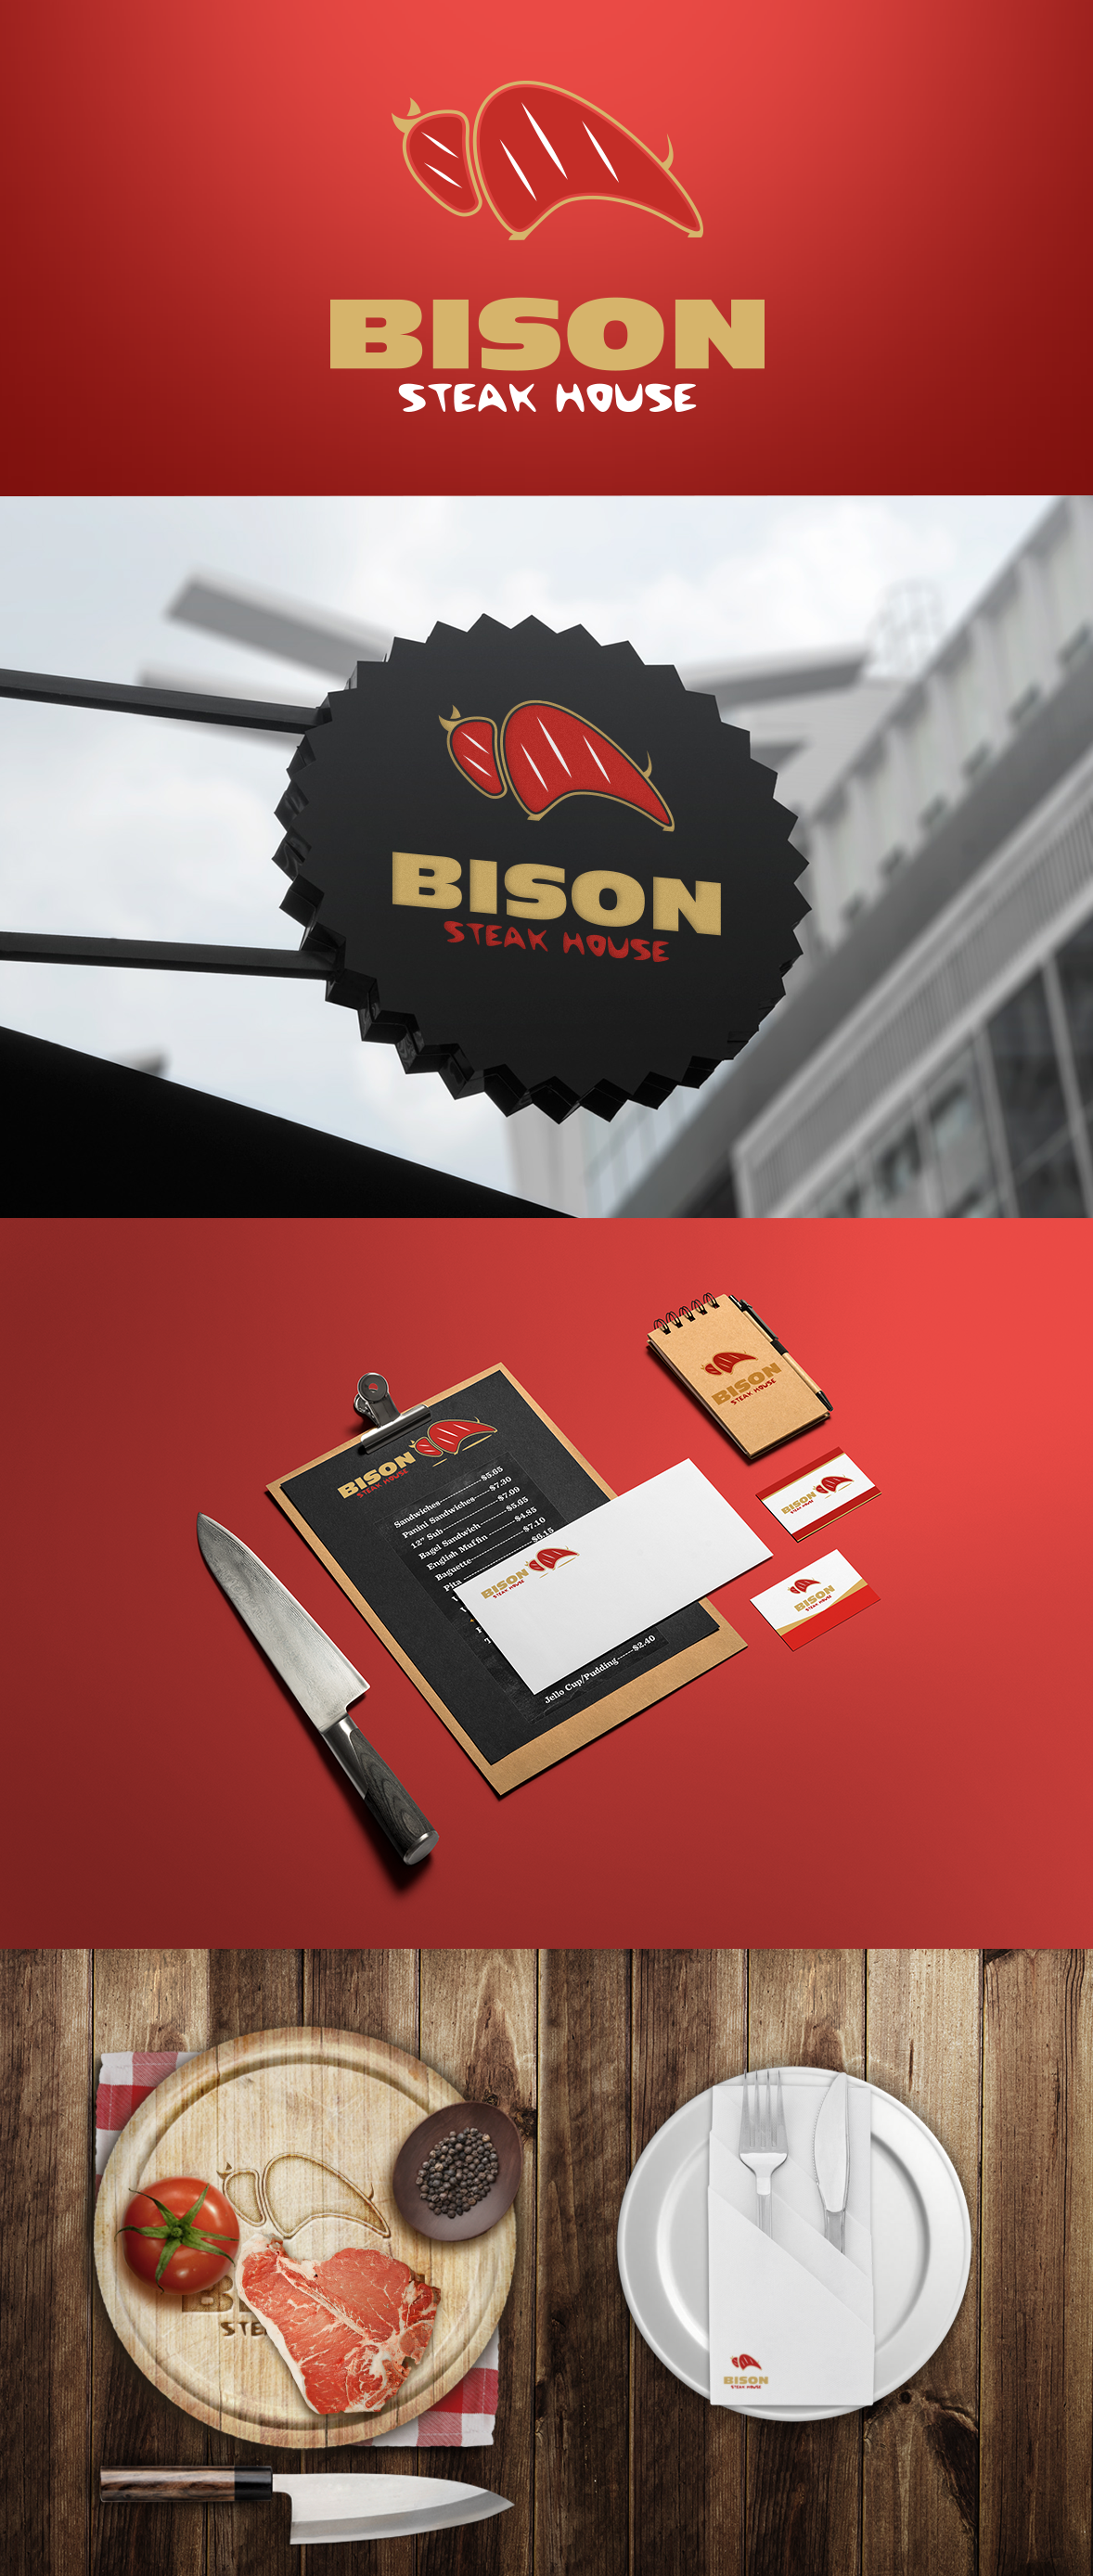 Bison steak house